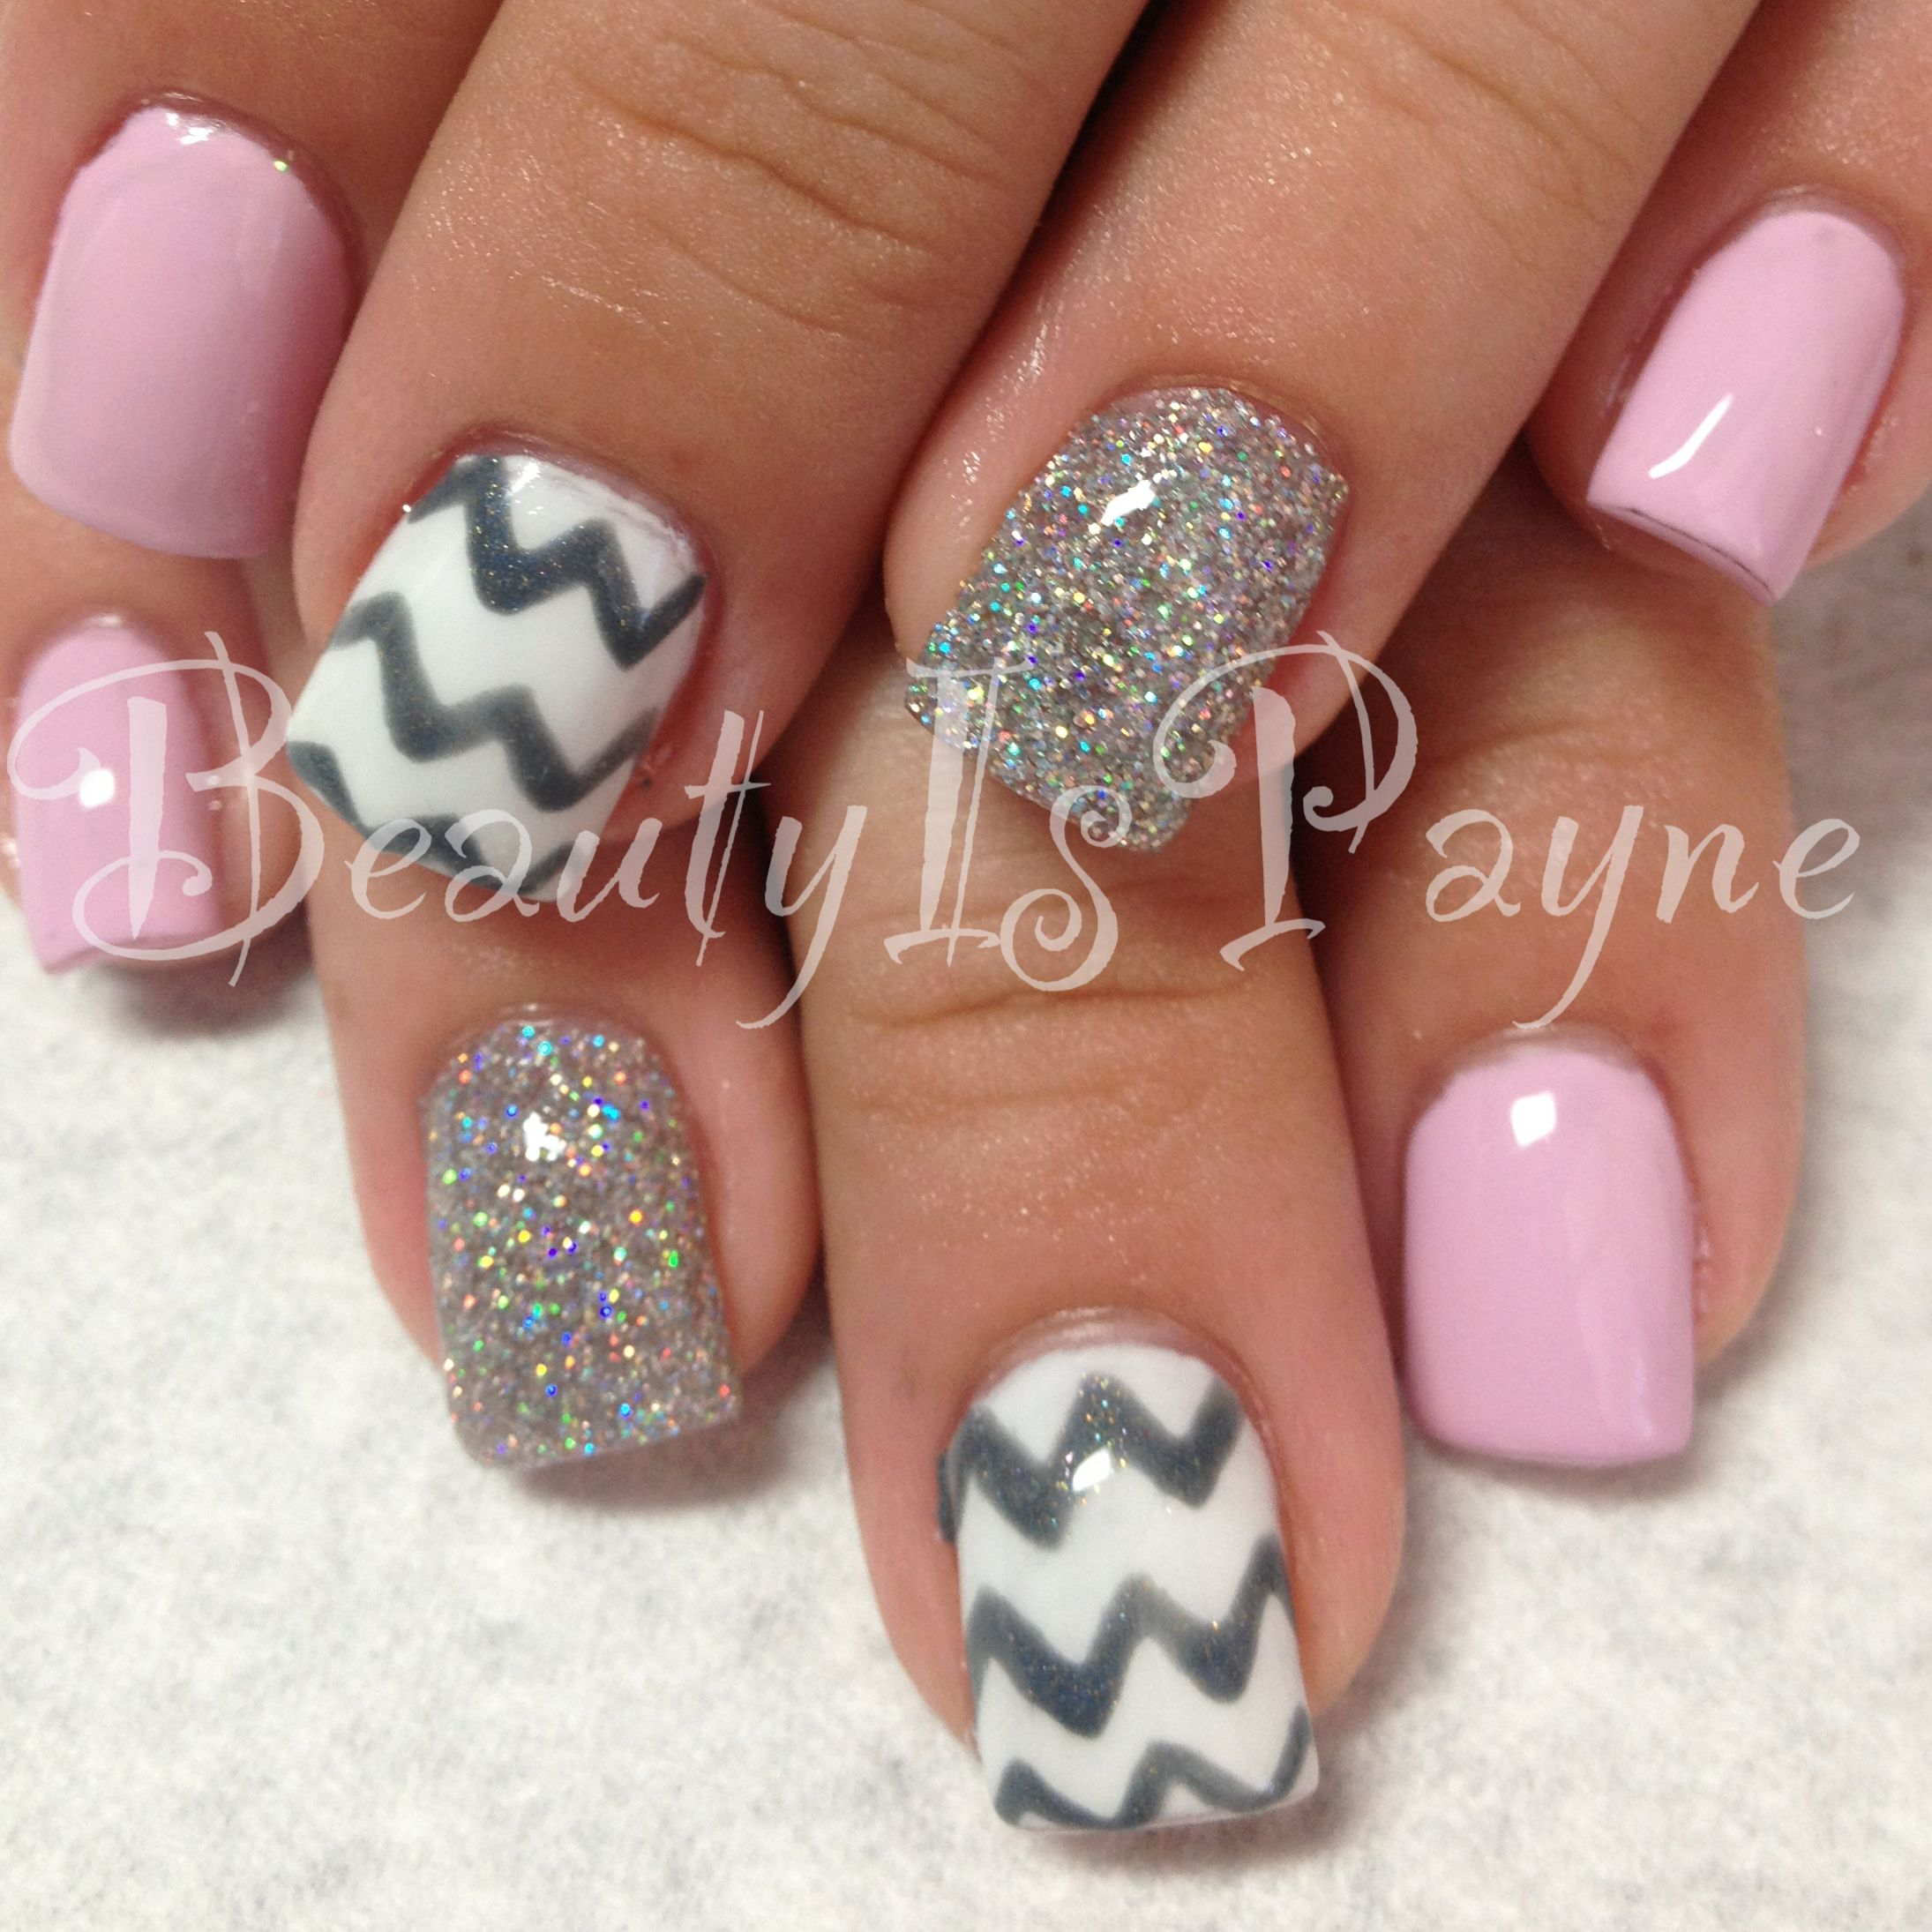 A Pretty Design For Shellac Nailsybe Without The Pink All